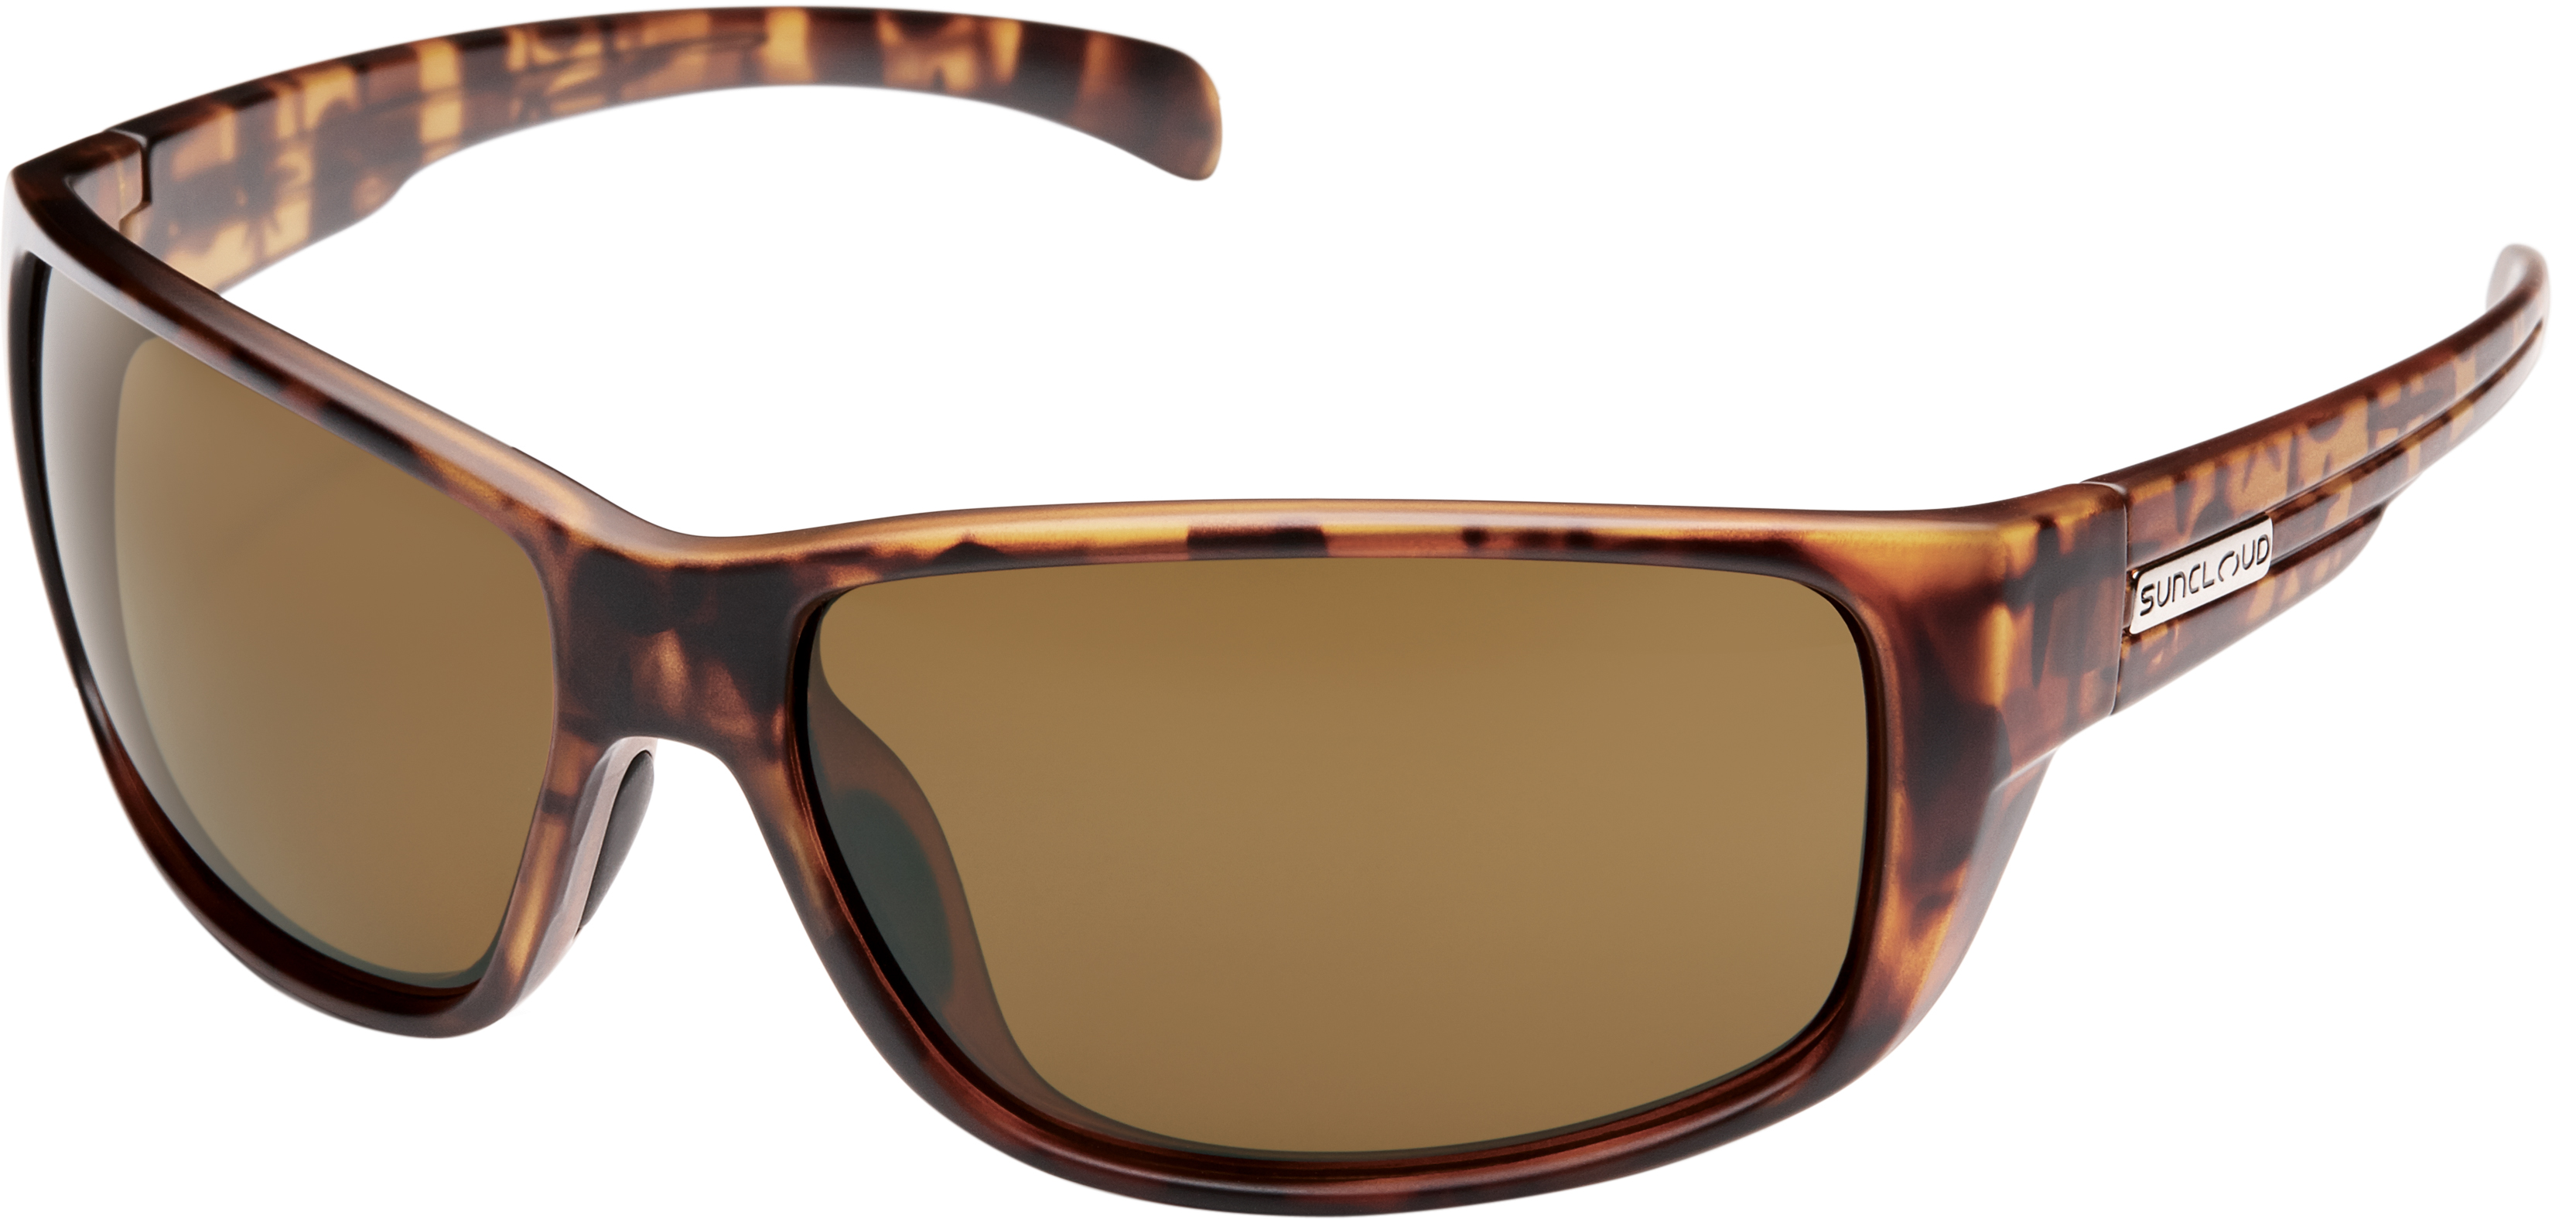 a25f8250cd6 Suncloud Milestone Polarized Sunglasses - Unisex